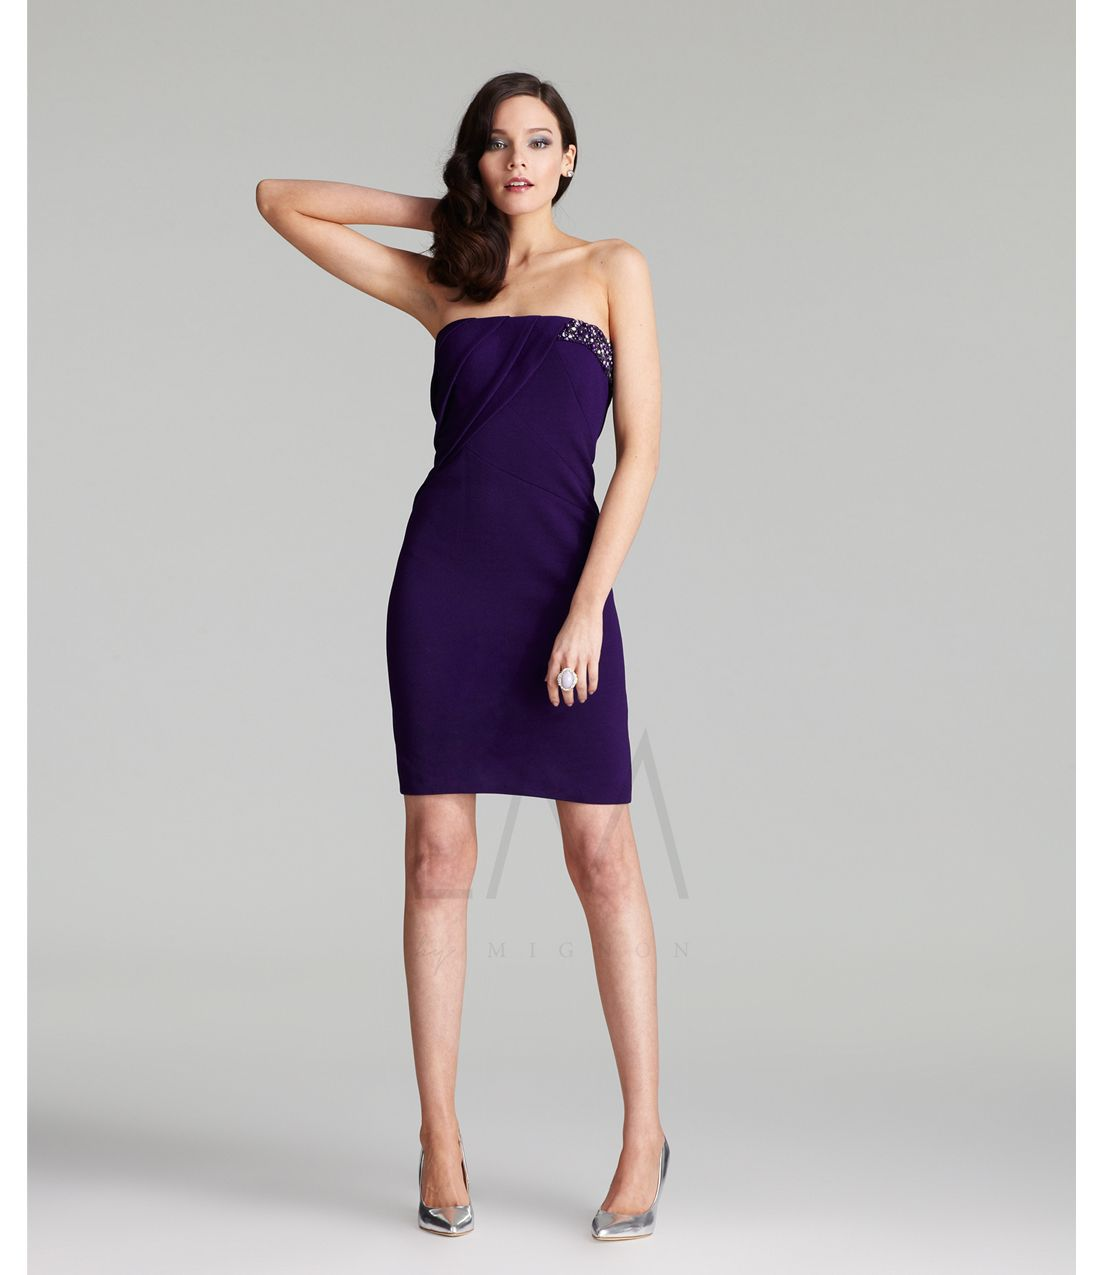 9 best images about Purple Cocktail Dress on Pinterest | Shorts ...